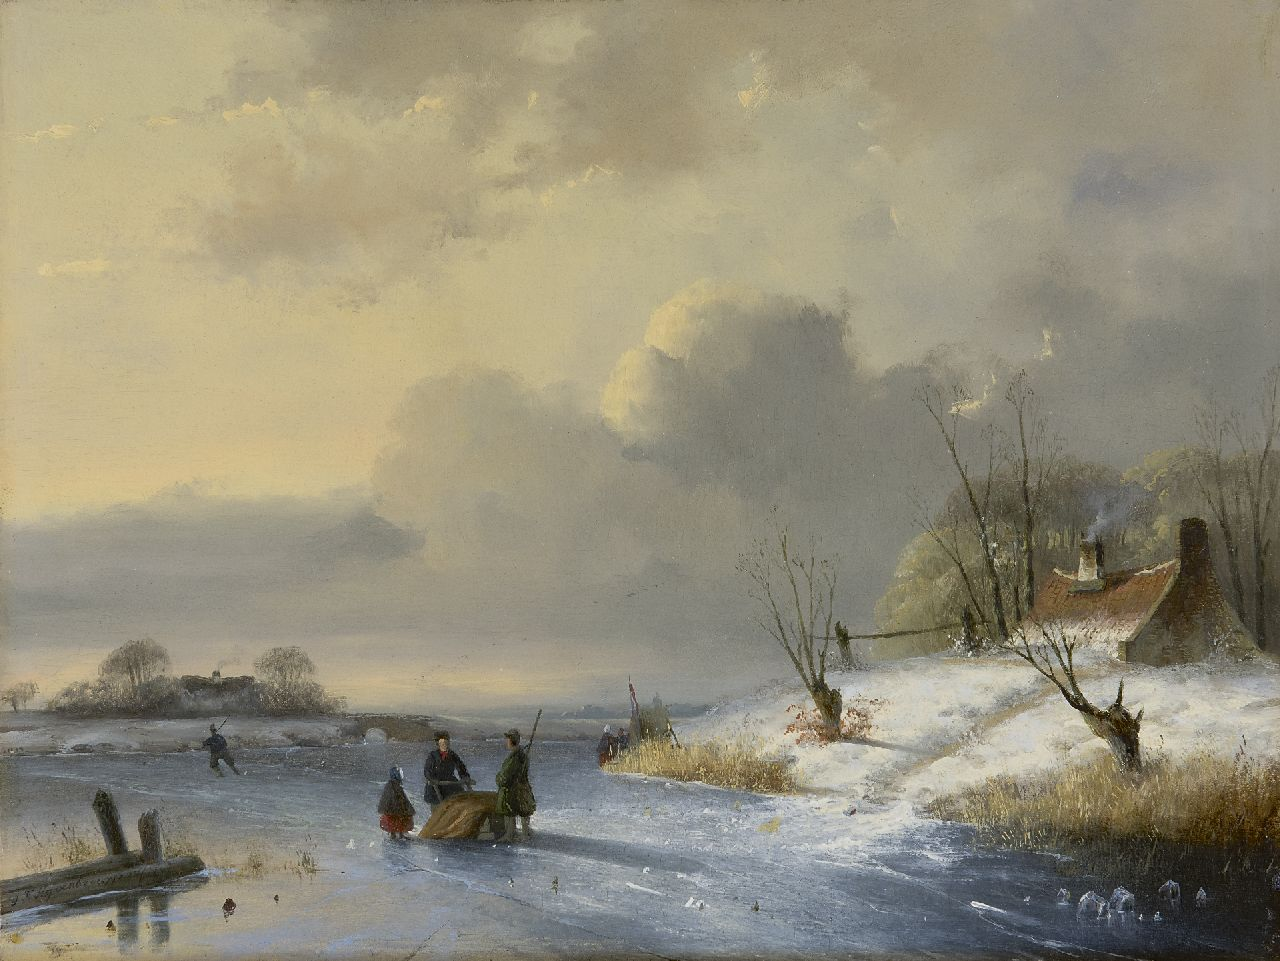 Hoppenbrouwers J.F.  | Johannes Franciscus Hoppenbrouwers, A winter landscape with skaters, oil on panel 27.9 x 36.9 cm, signed l.l. and dated 1847